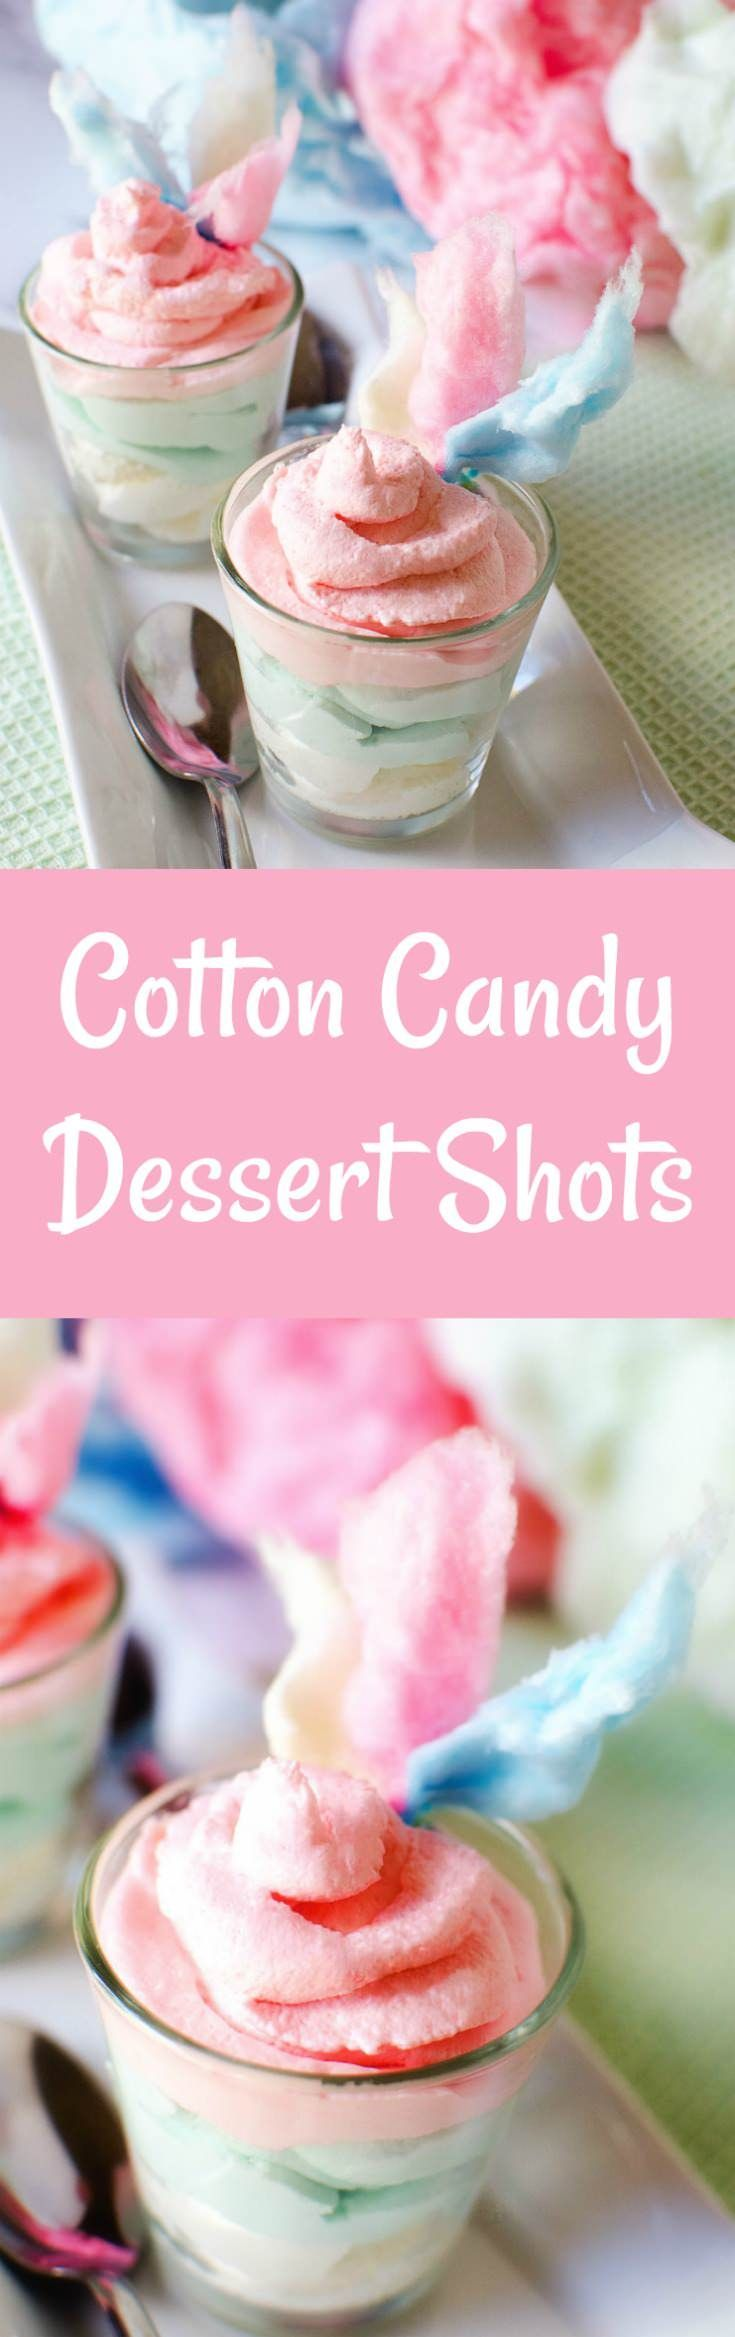 Make these creamy cotton candy dessert shots that will remind you exactly of your favorite state fair food! Perfect for parties - easy and delicious. via @diy_candy